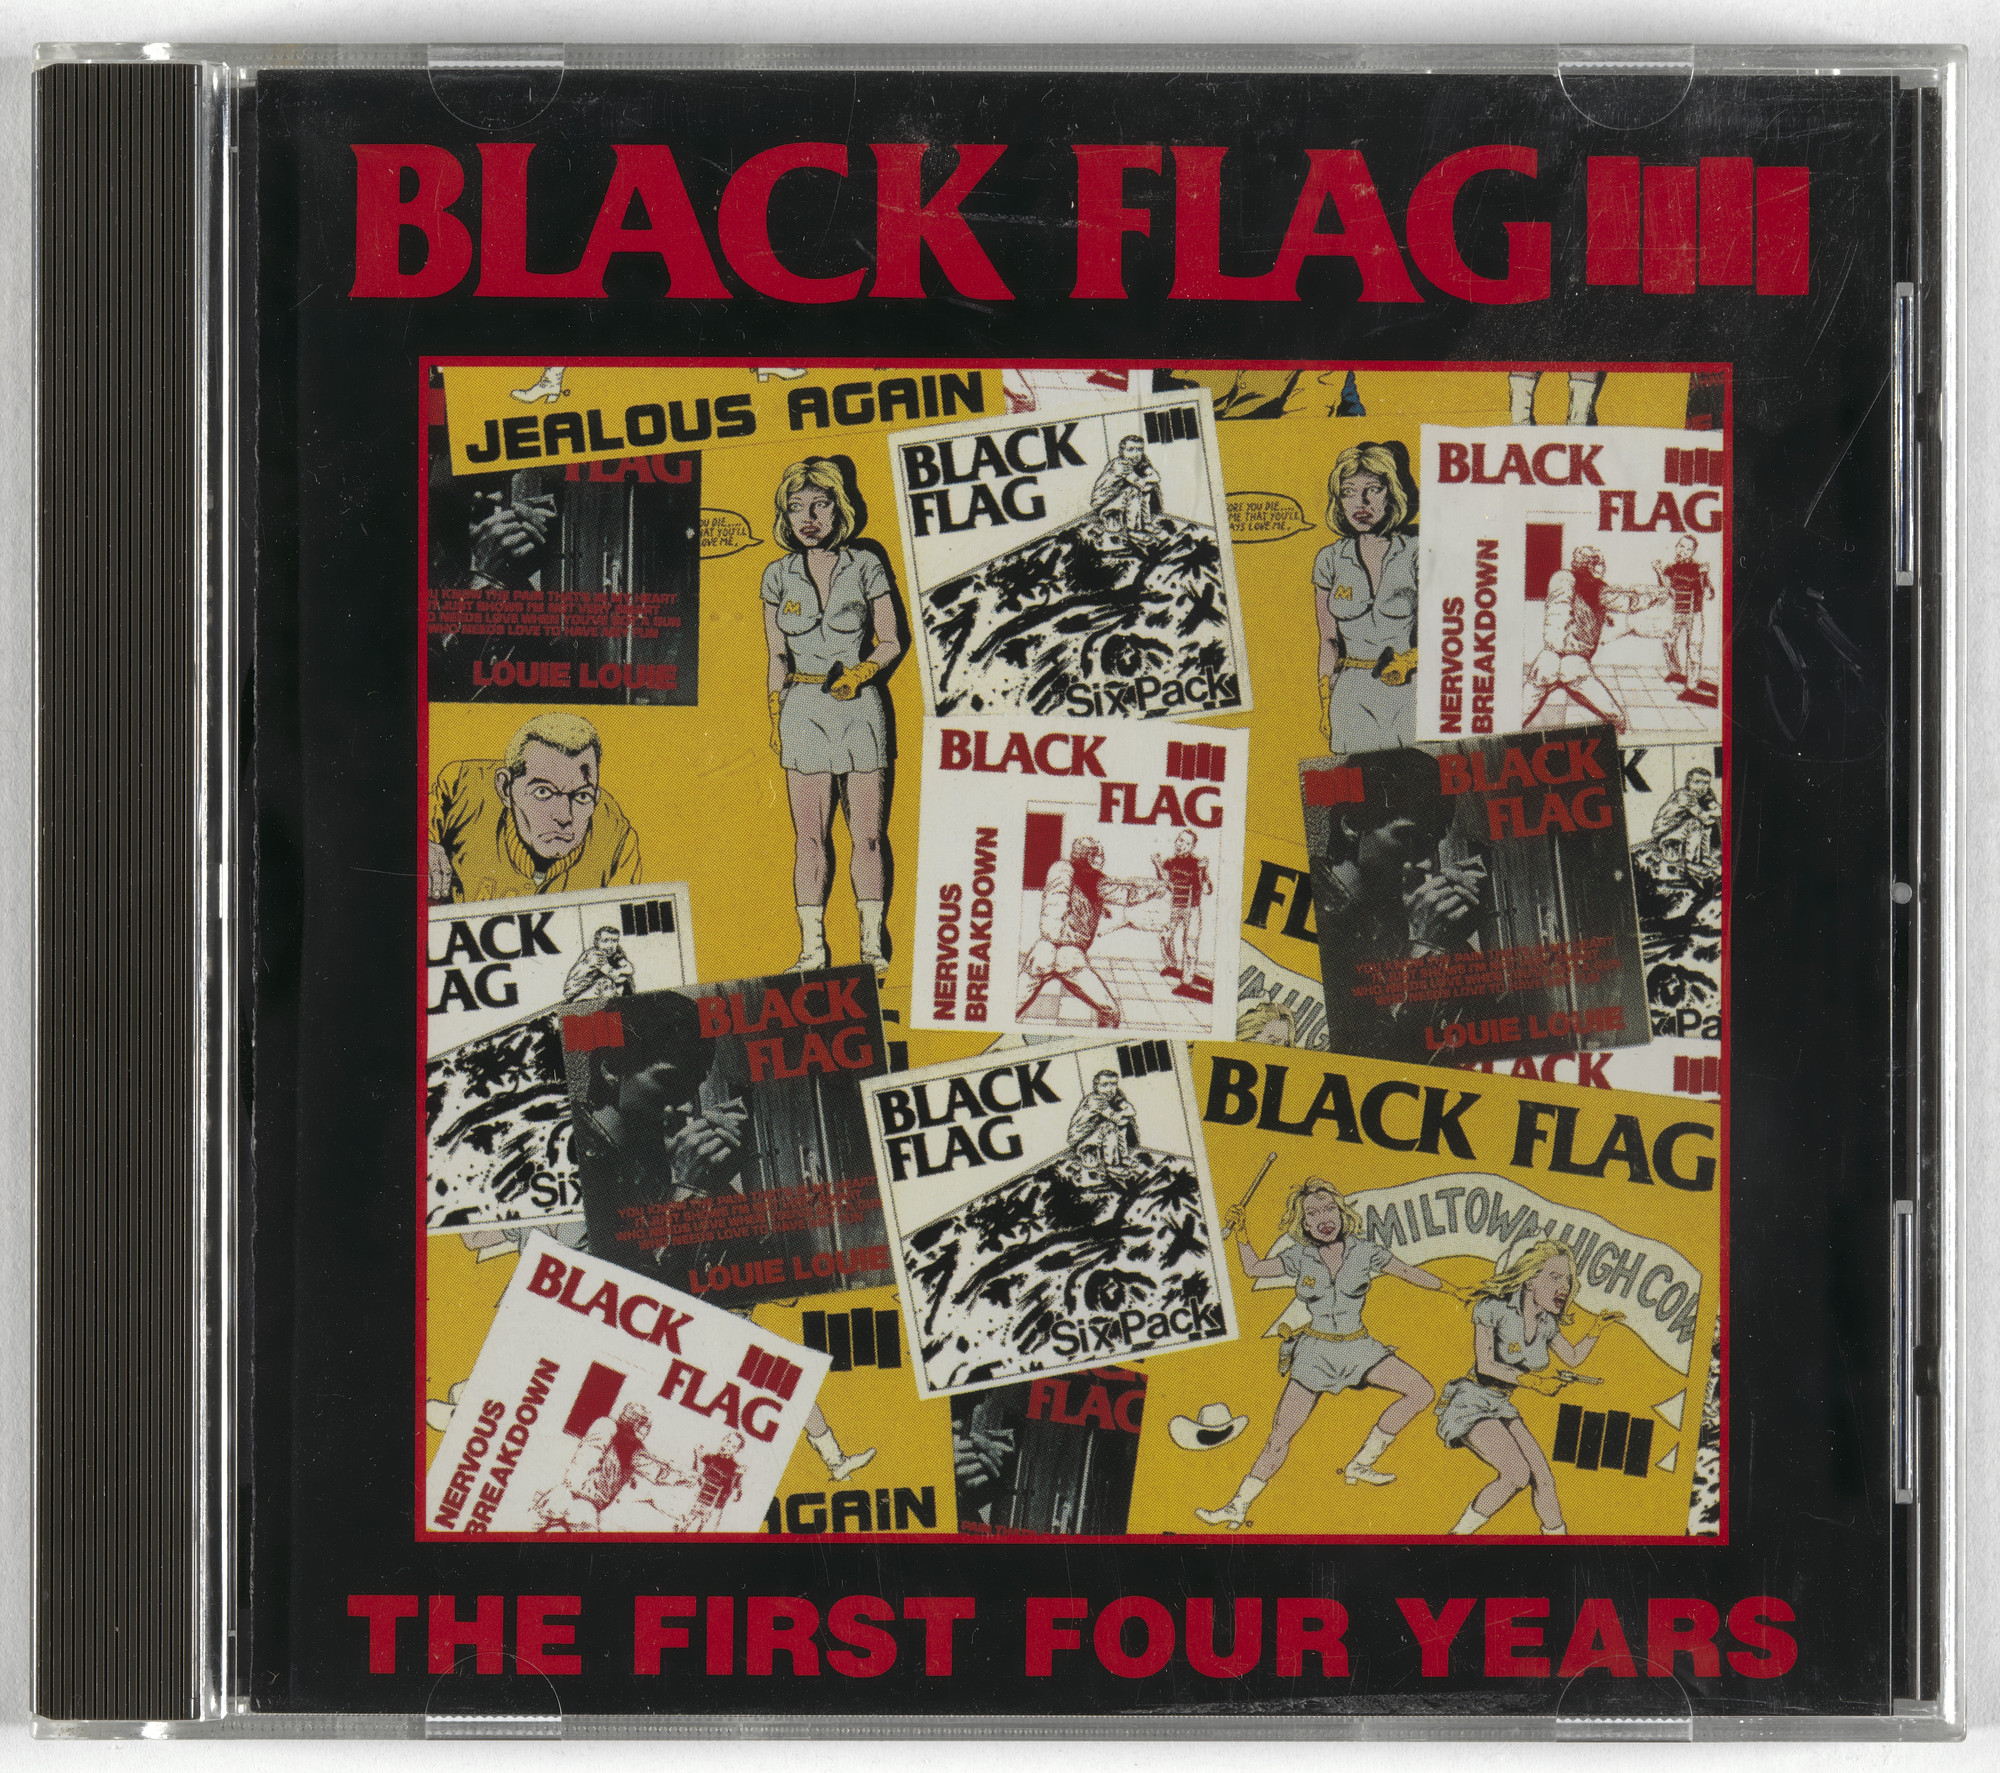 Black Flag, Raymond Pettibon. The First Four Years. 1983